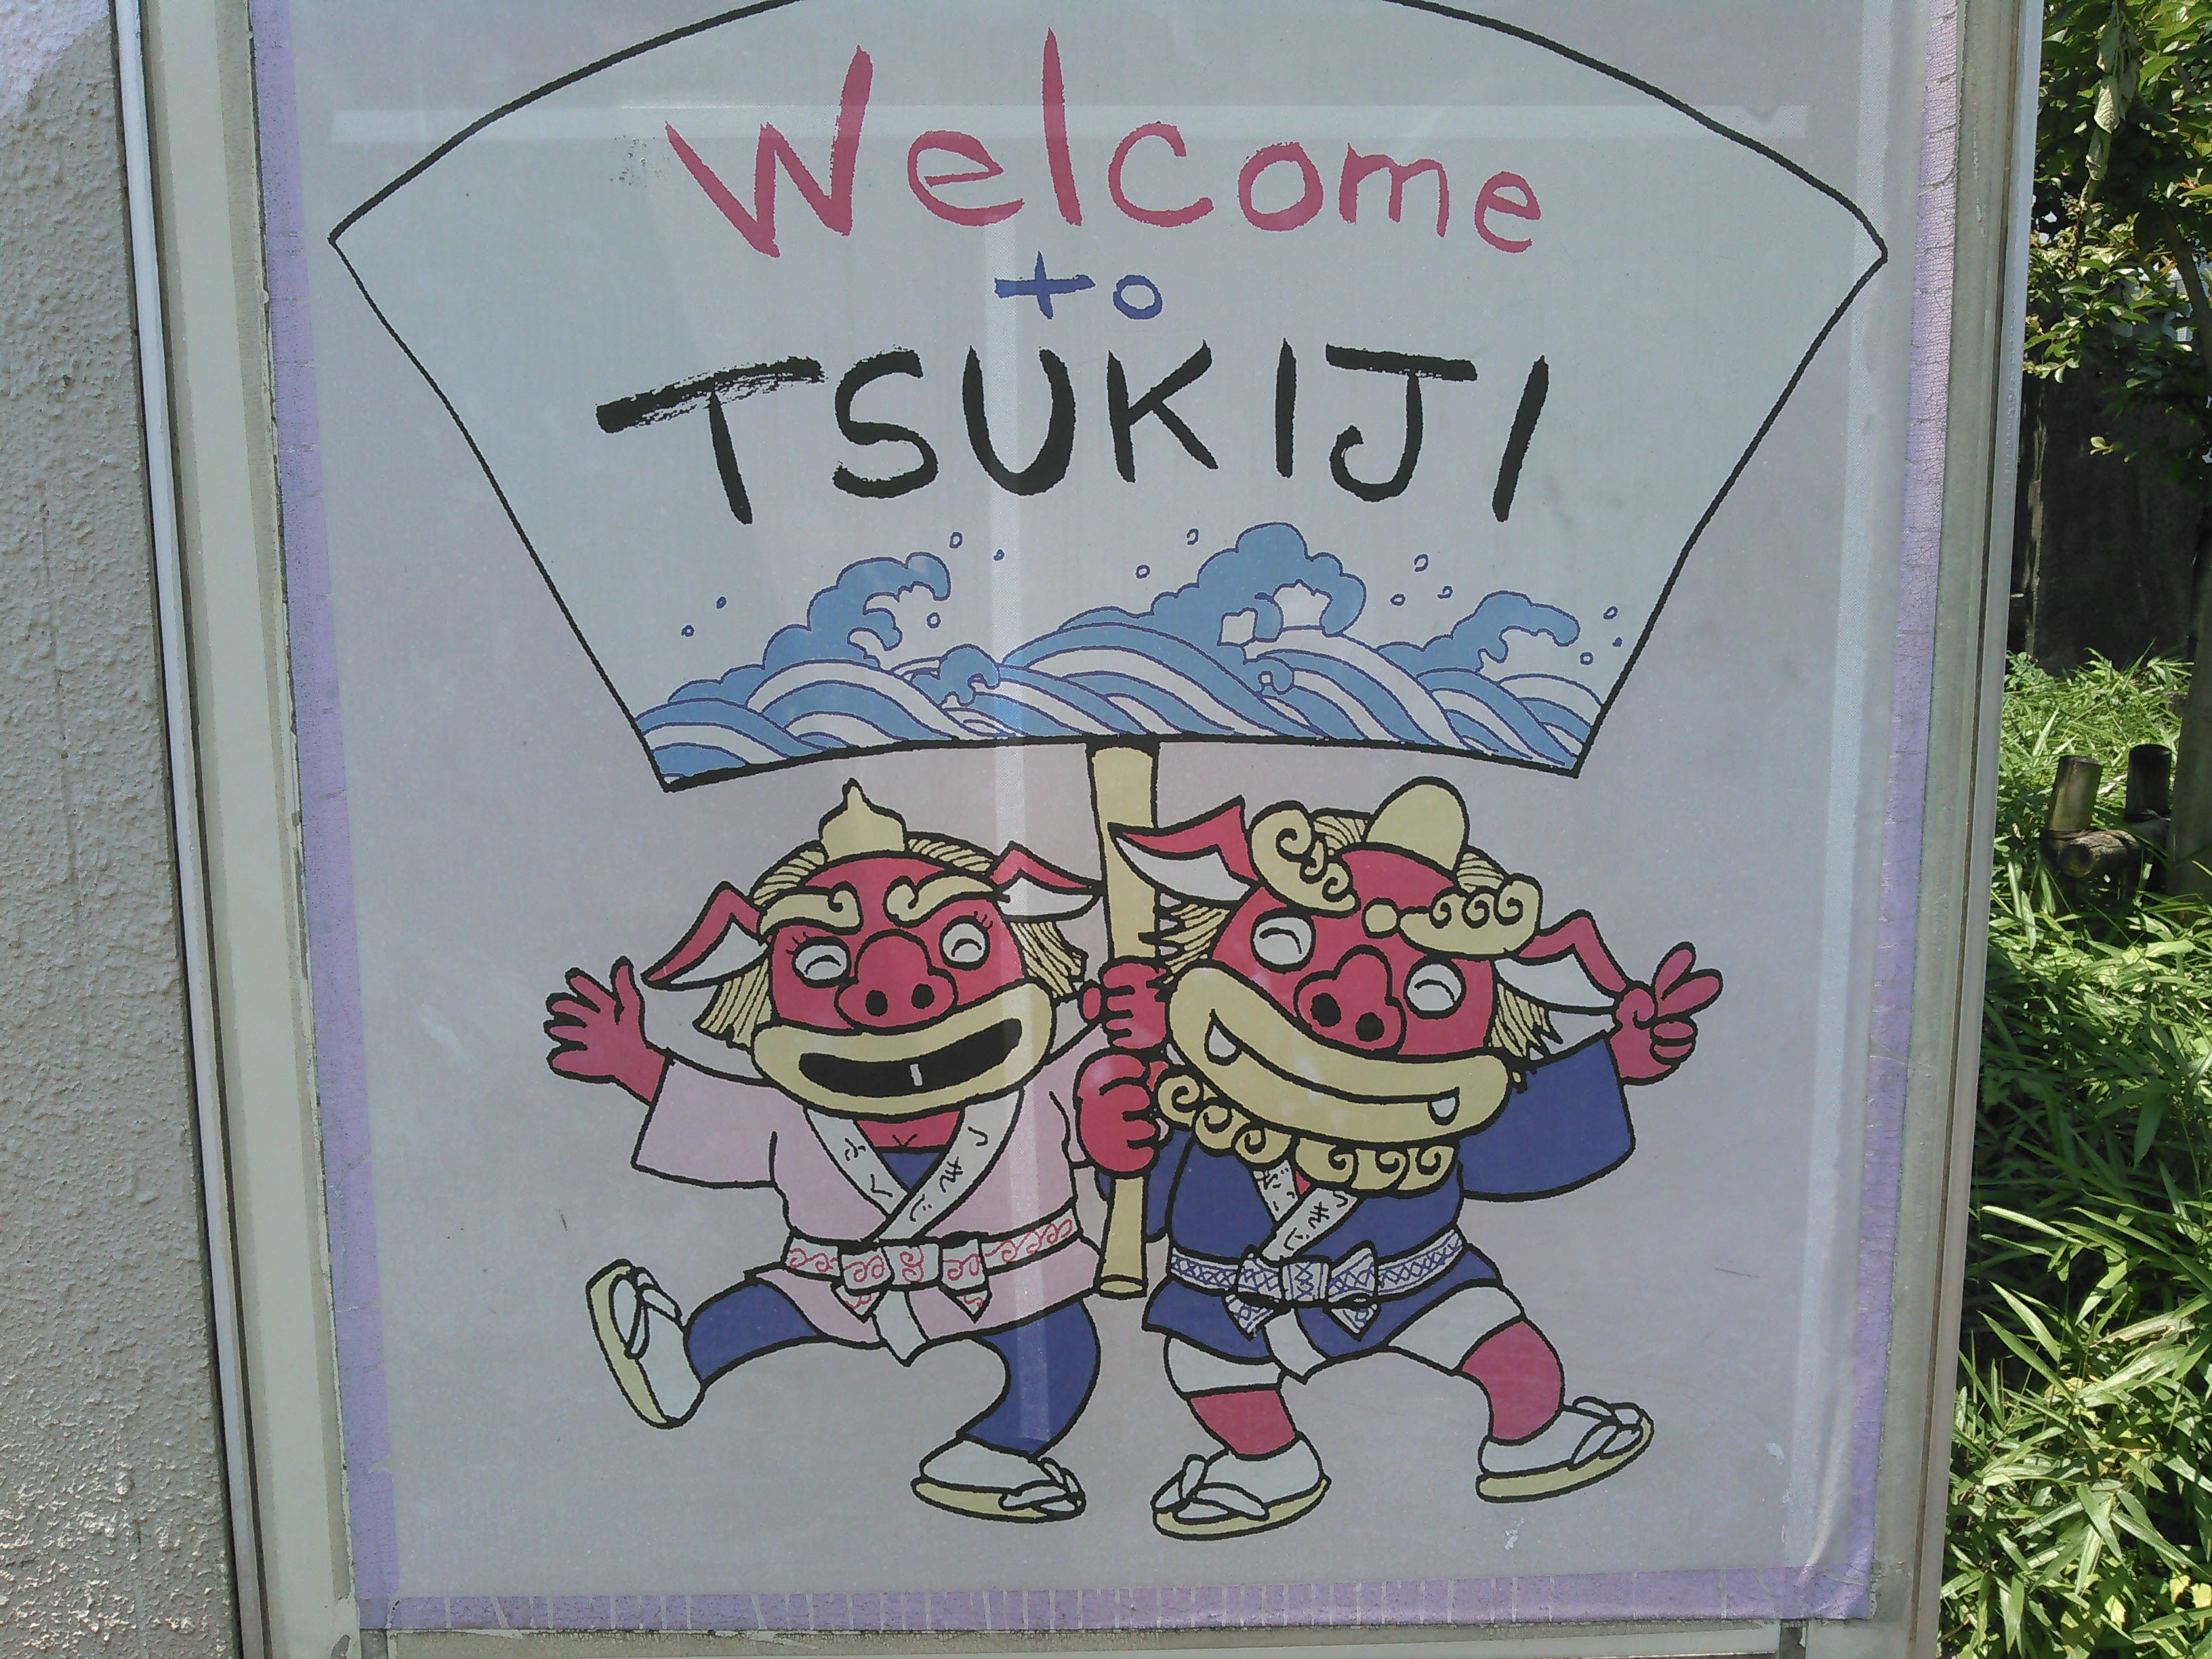 Welcome to Tsukiji